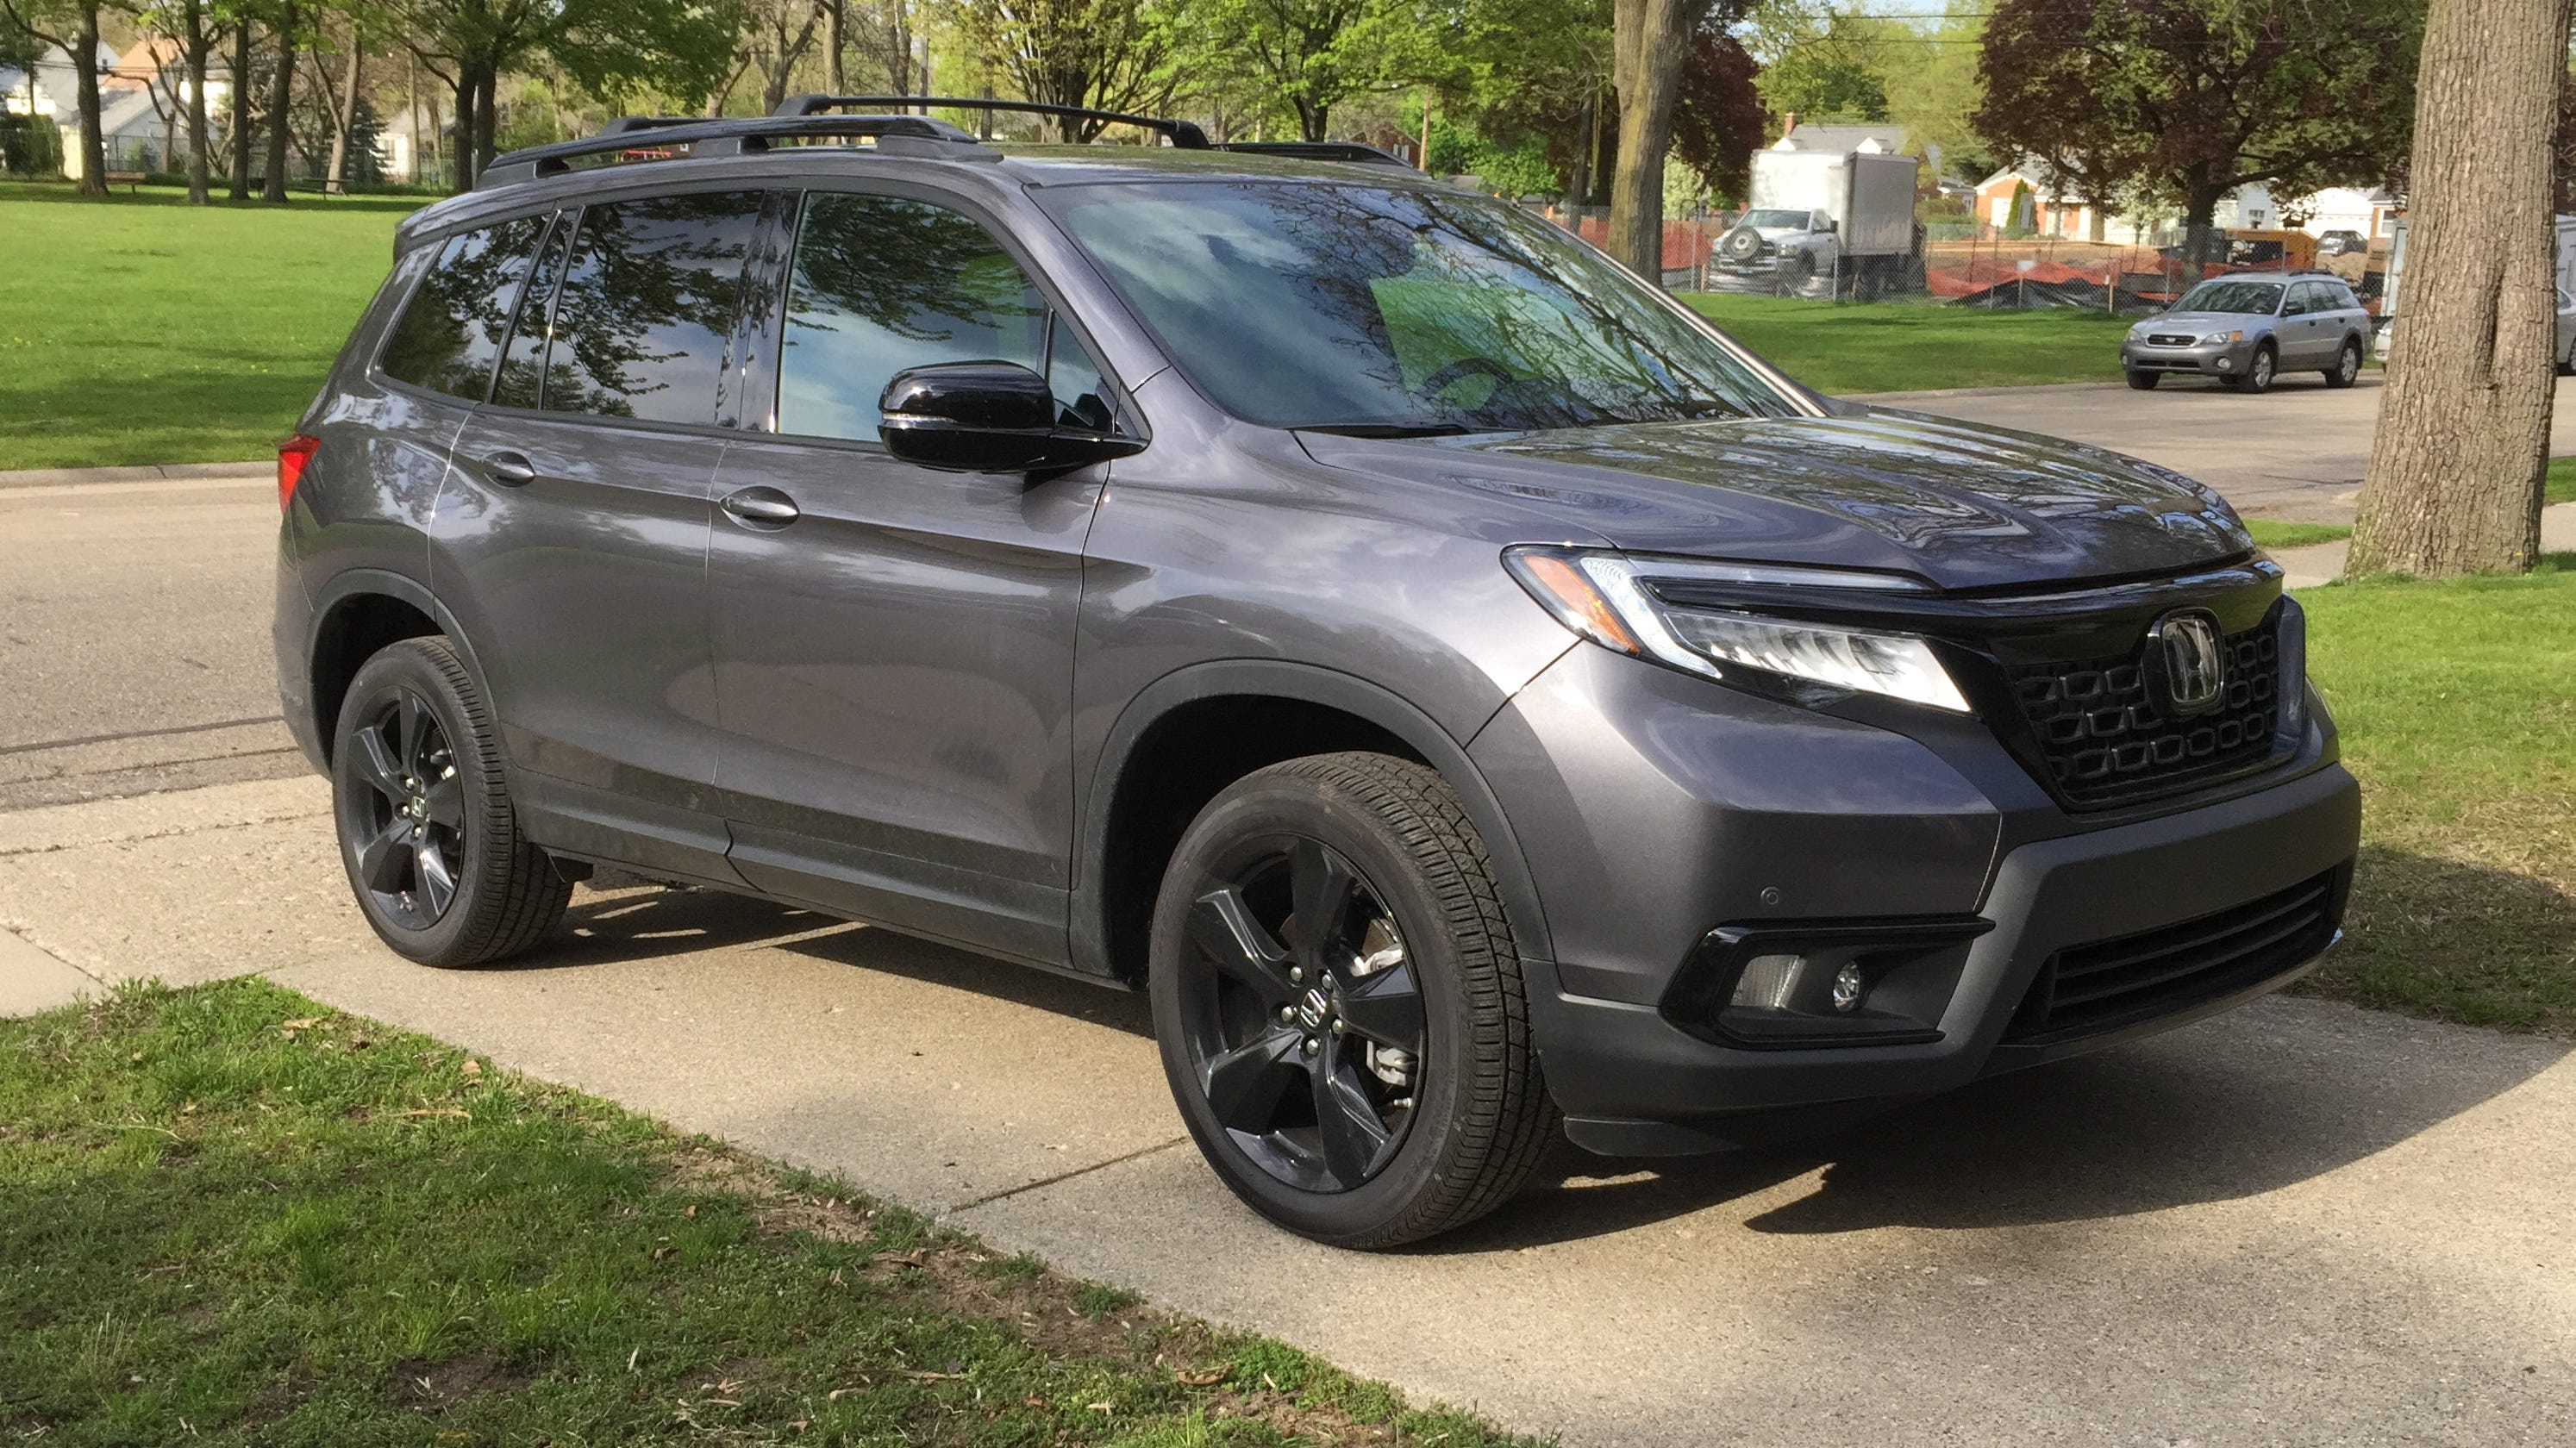 2019 Honda Passport Suv Brings The Steak Not Much Sizzle